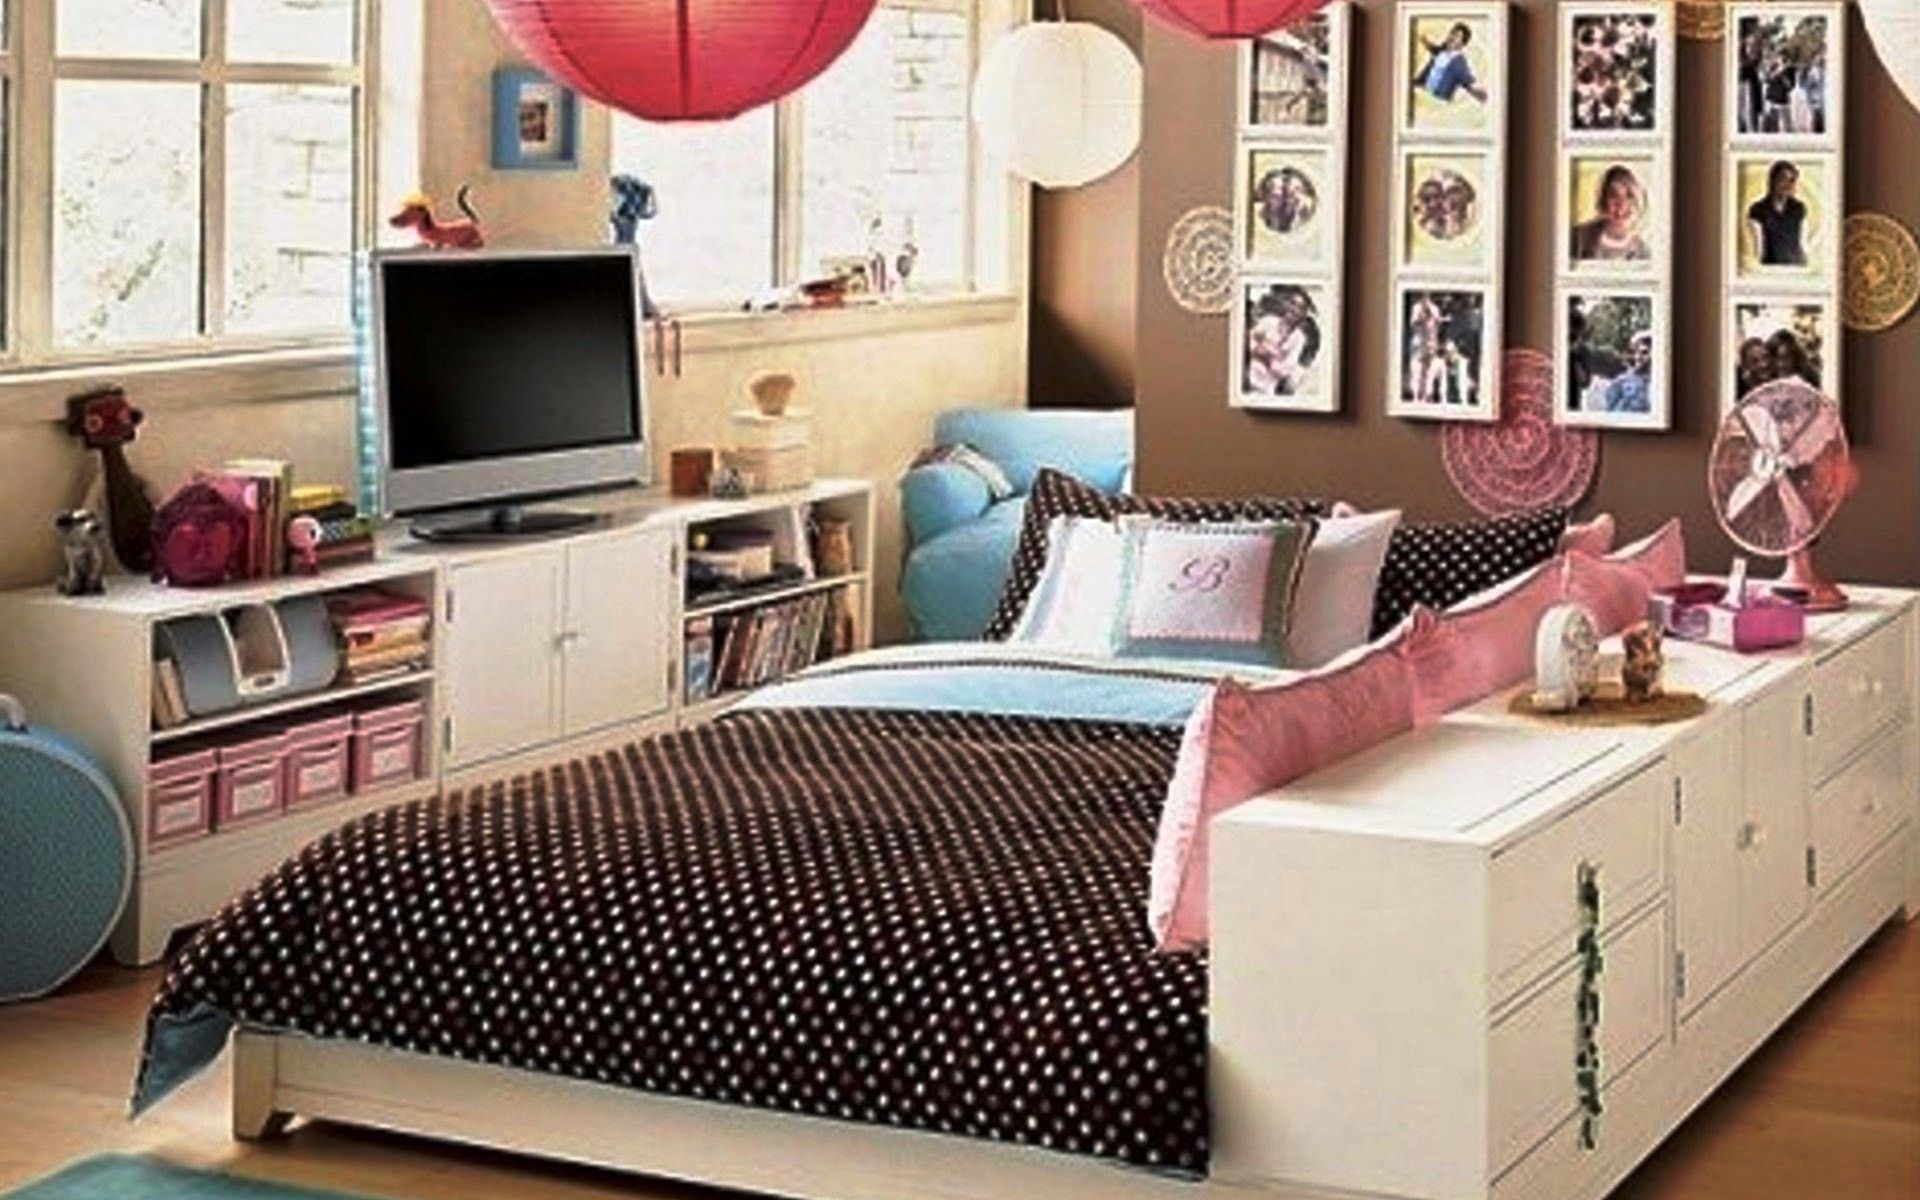 Bedroom paint ideas for young women - Bedroom Small Ideas For Young Women Single Bed Window Decor